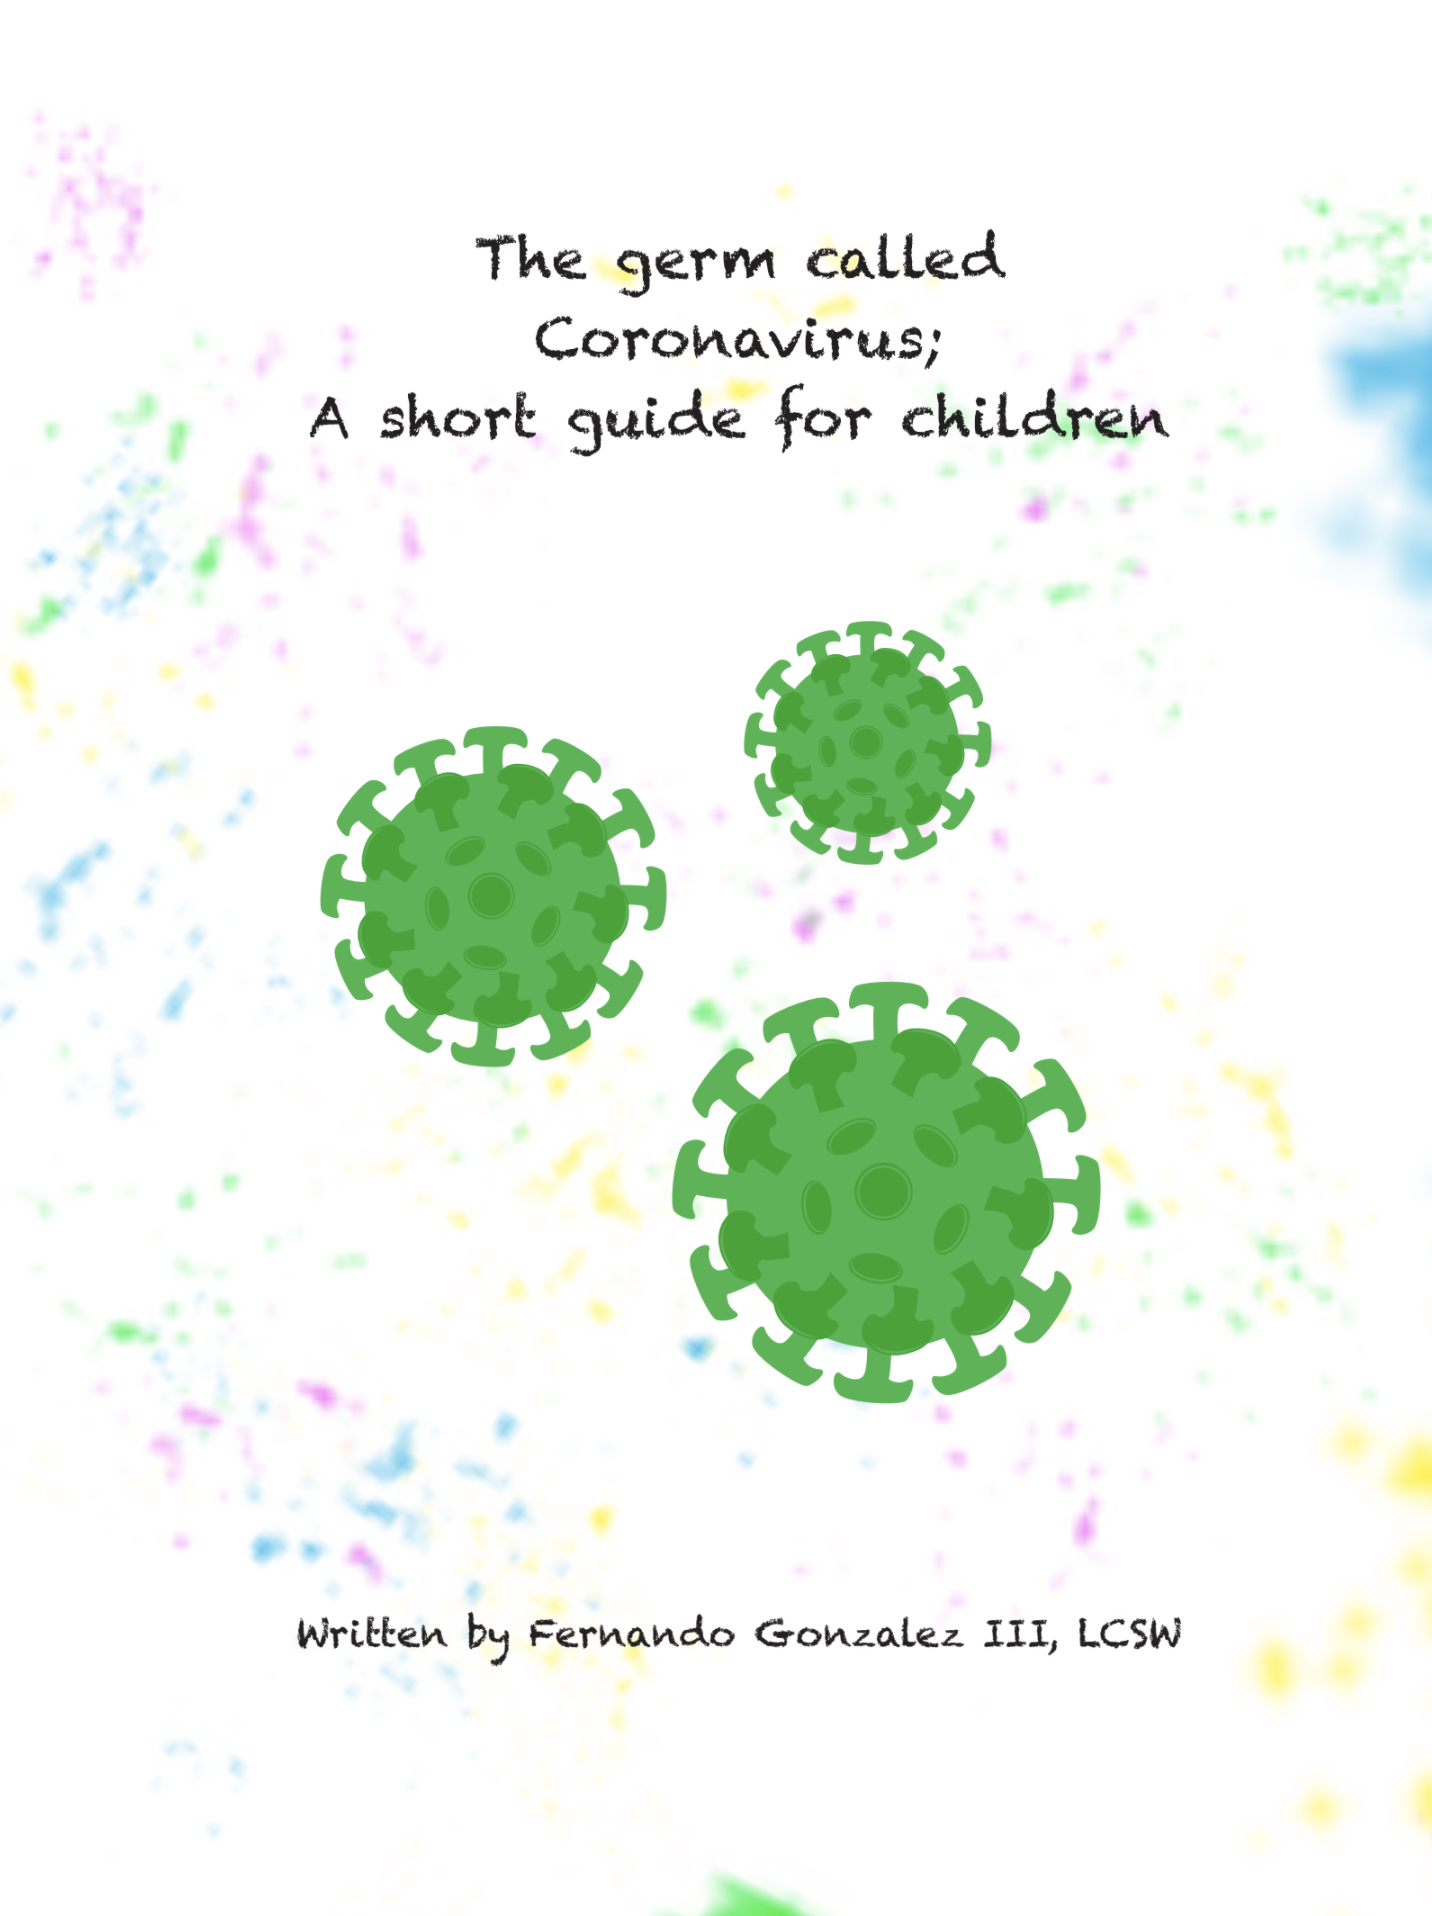 The Germ Called Coronavirus; a short guide for children